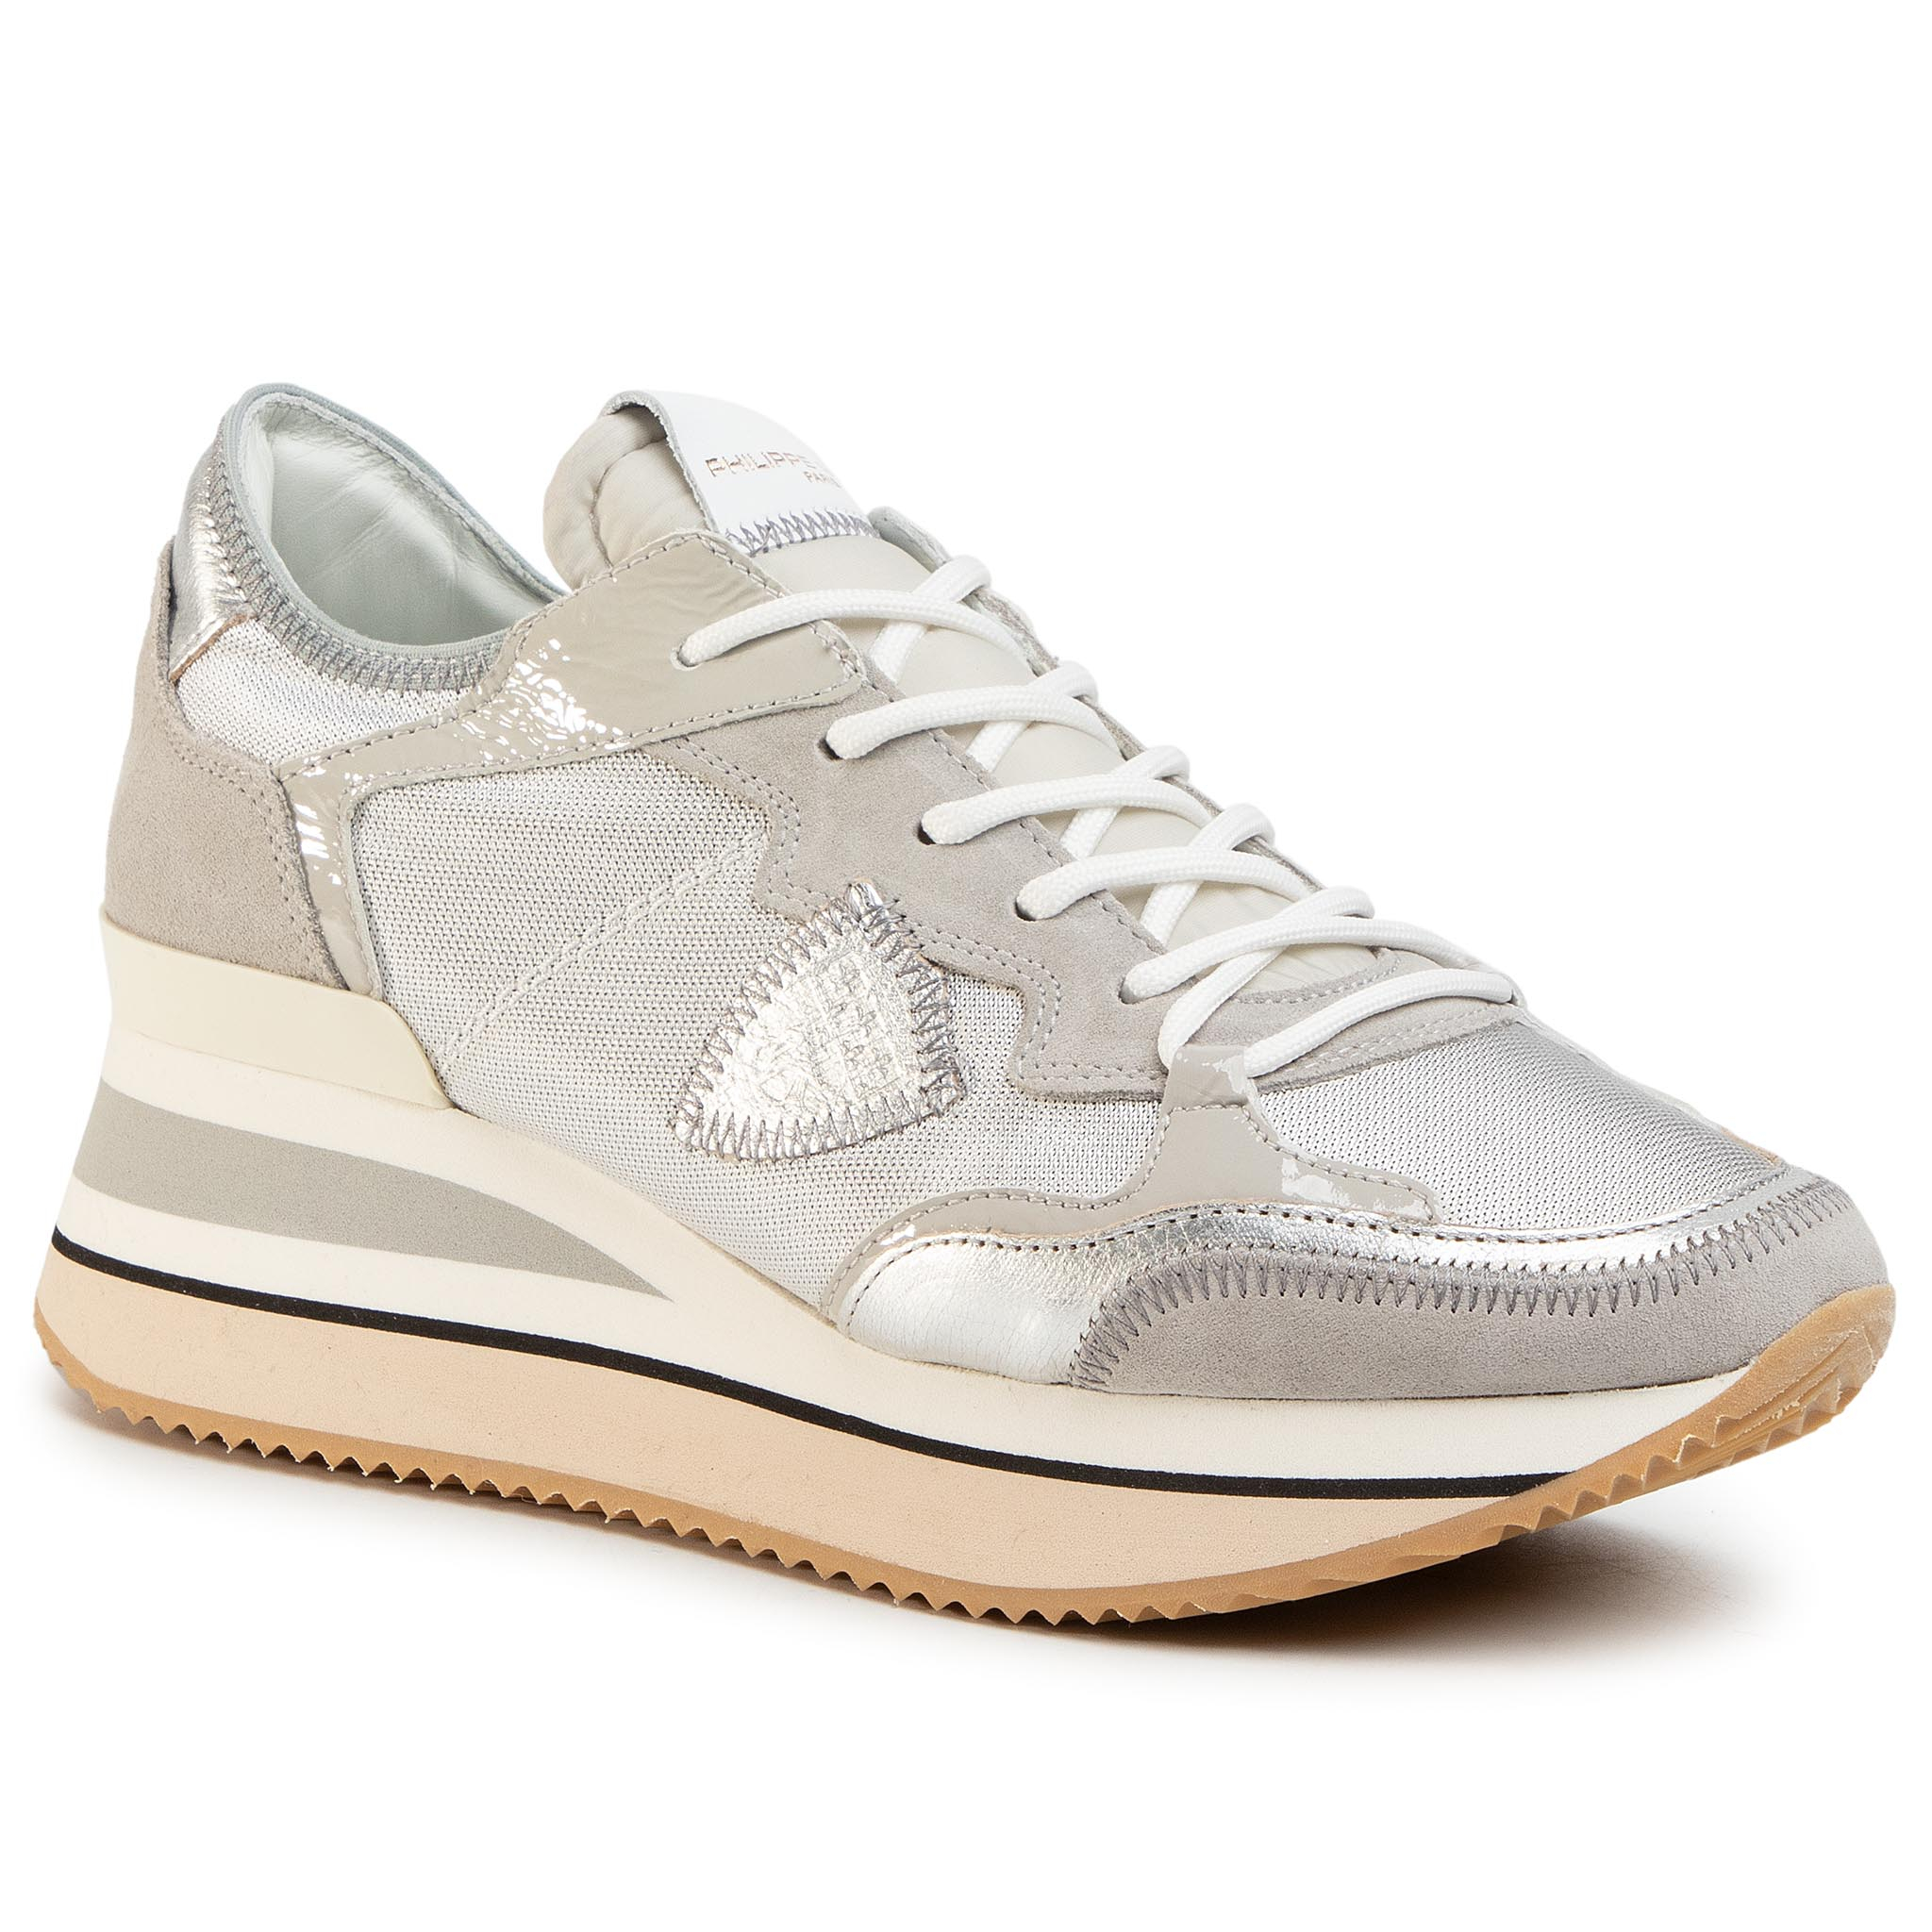 Sneakers PHILIPPE MODEL - Triomphe TTLD WR03 Gris